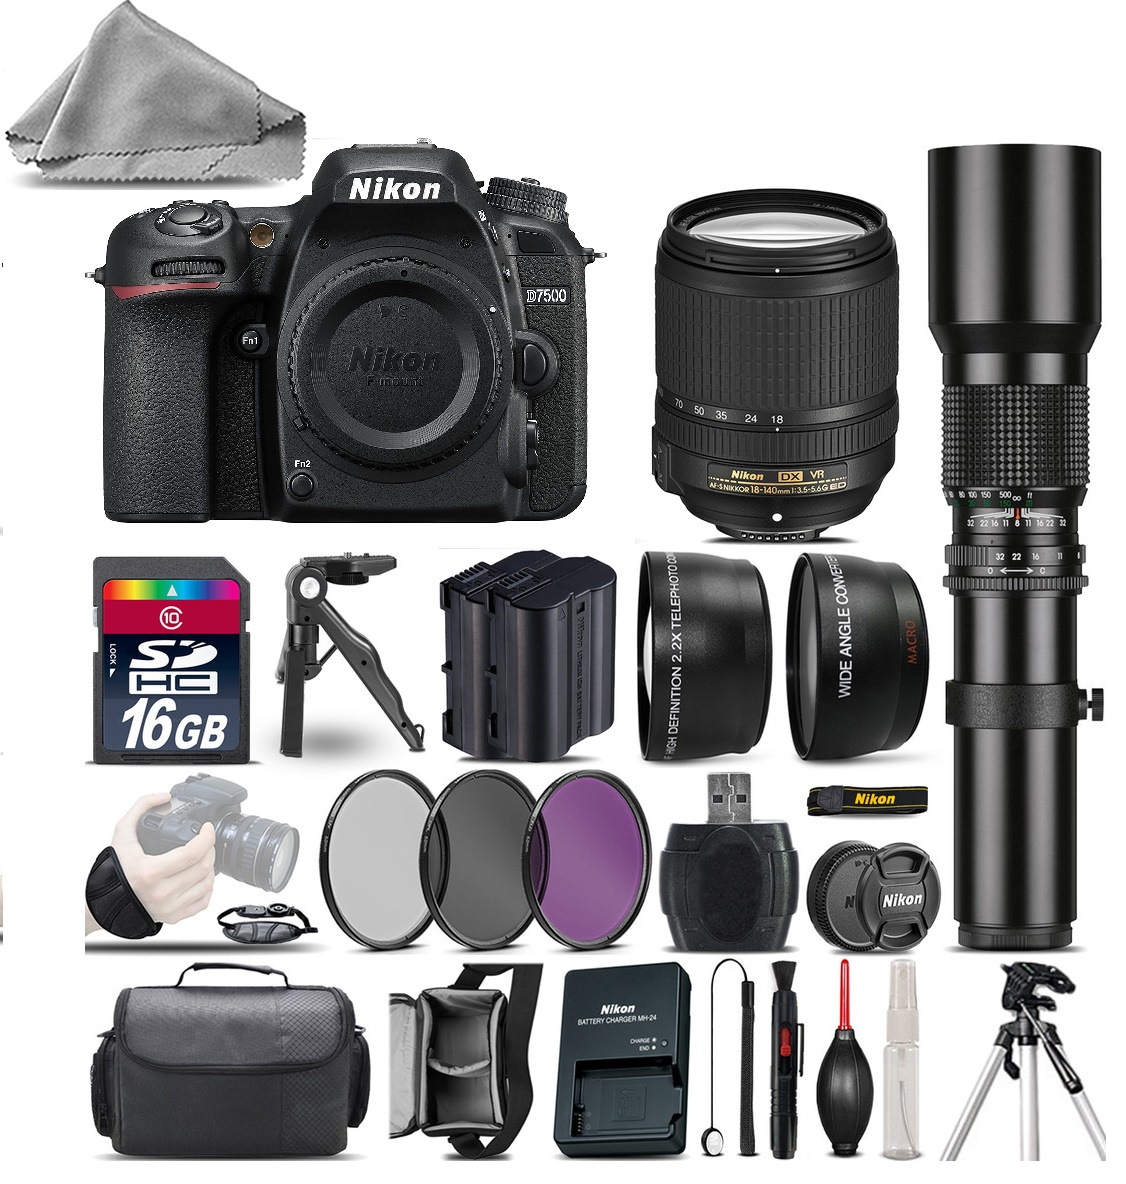 D7500 Camera + AFS 18-140mm VR + 500mm Lens + Extra Battery + 1yr Warranty *FREE SHIPPING*